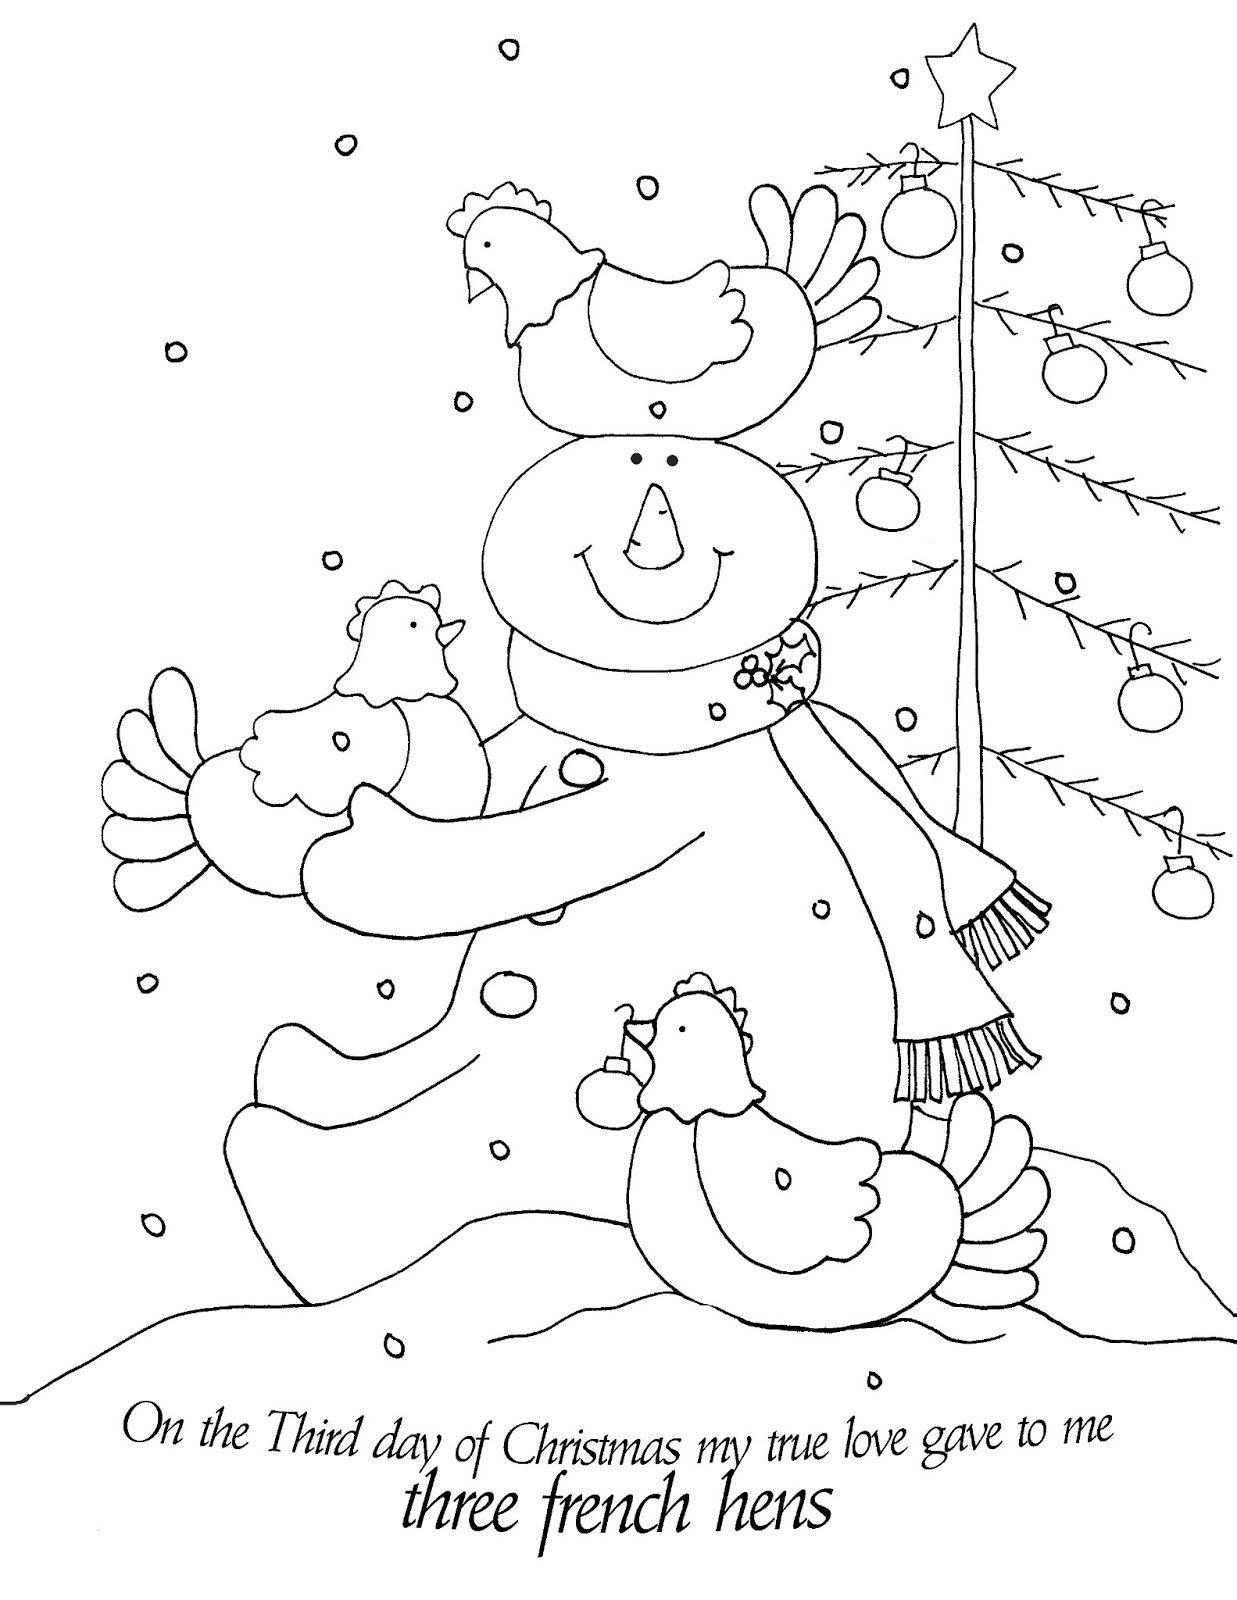 Onthethirddayofchristmasg 12371600 free dearie dolls digi stamps the third day of christmas bankloansurffo Gallery